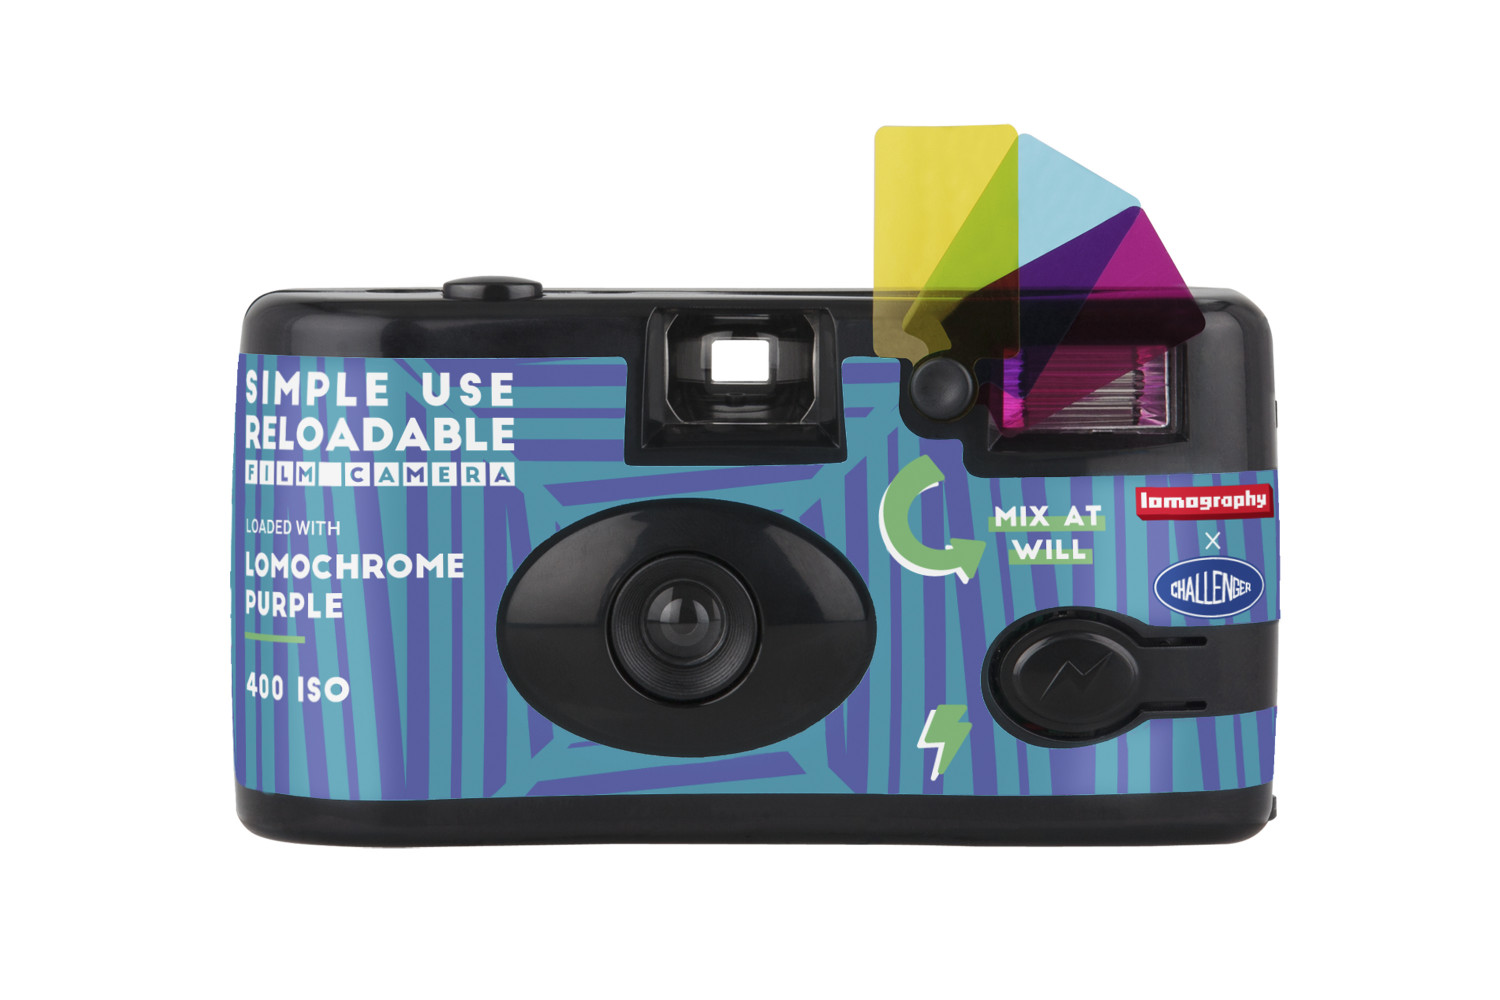 Simple Use Reusable Film Camera Lomochrome Purple - Challenger Edition